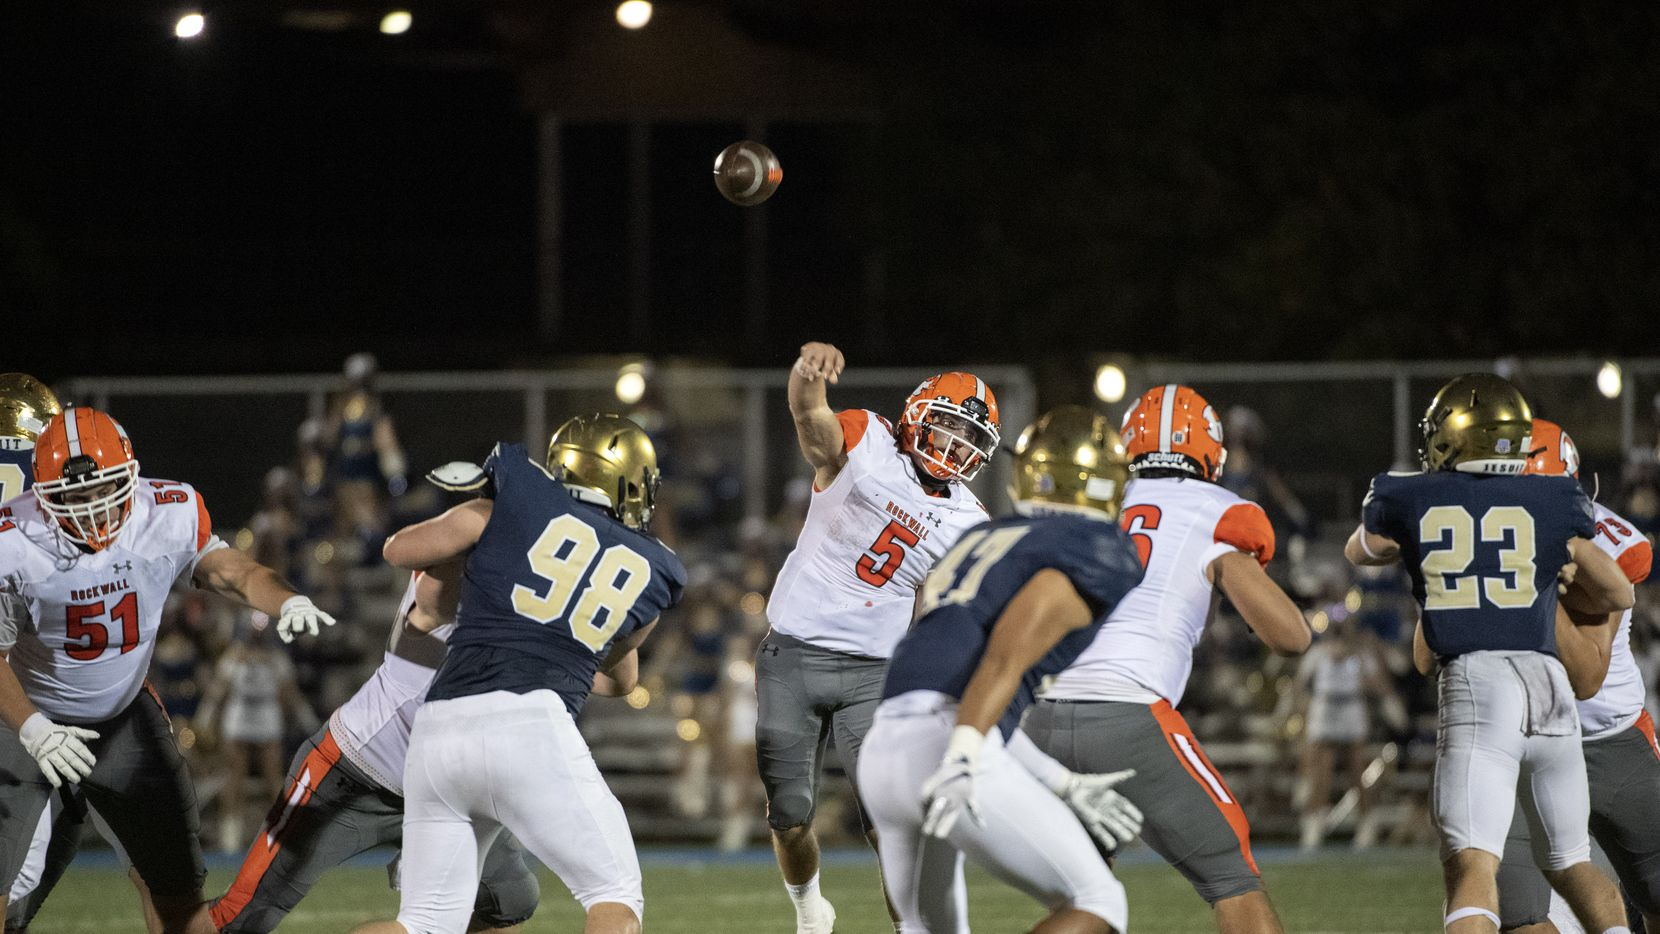 Rockwall junior quarterback Lake Bennett (5) throws a pass in the second half of a high school football game against Jesuit on Friday, October 2, 2020 at Postell Stadium in Dallas. Rockwall won 60-38.